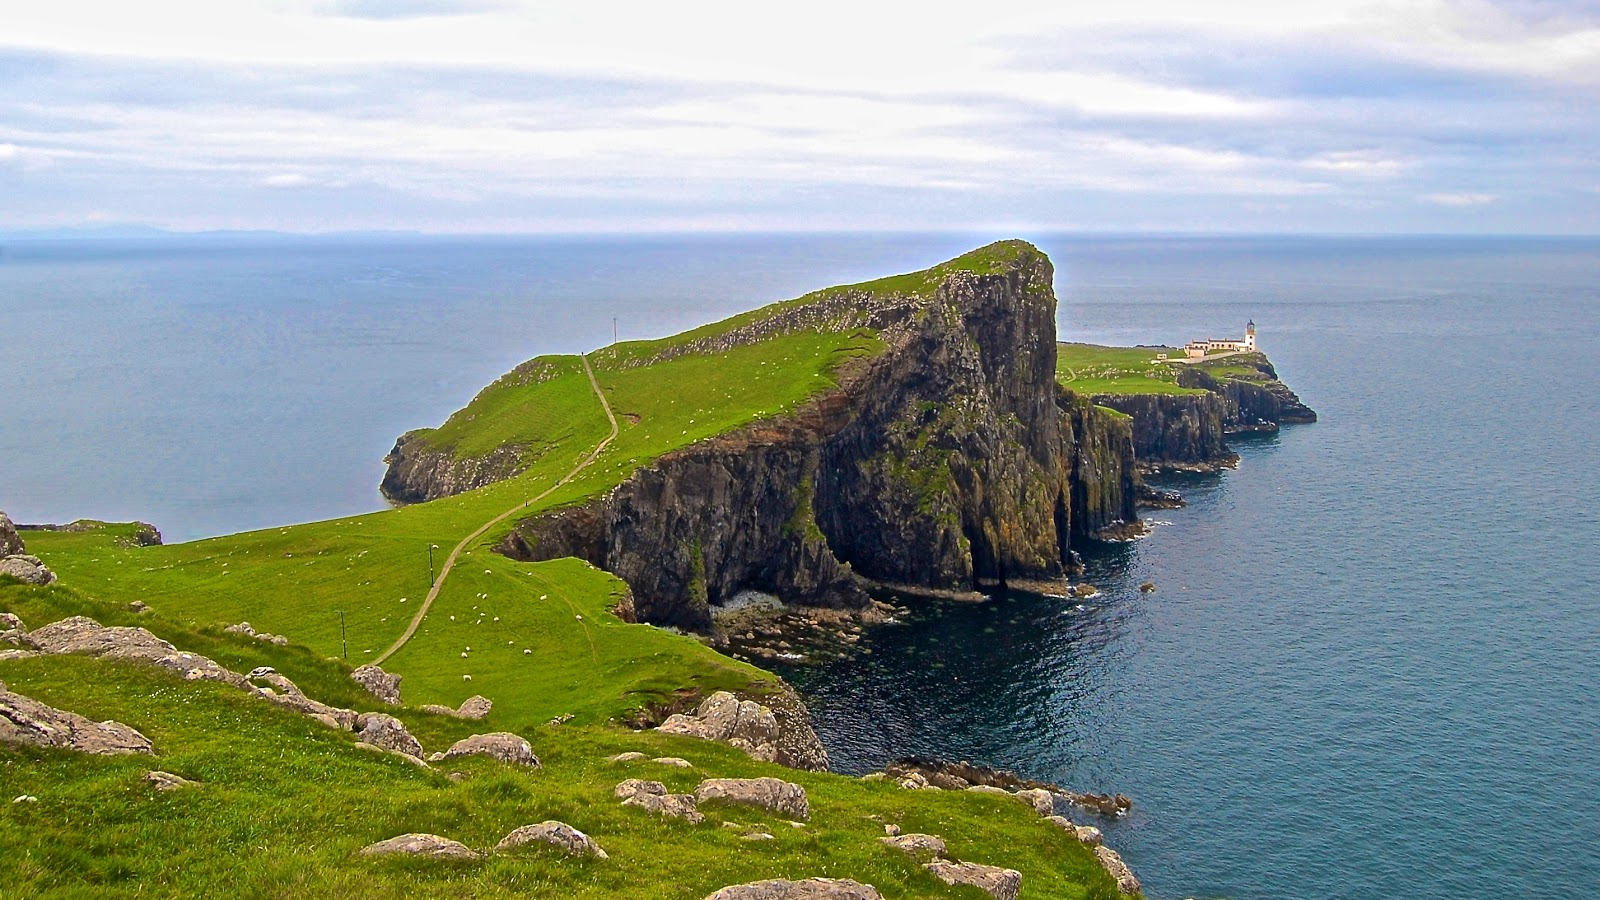 Neist Point Lighthouse on the Isle of Skye, Scotland